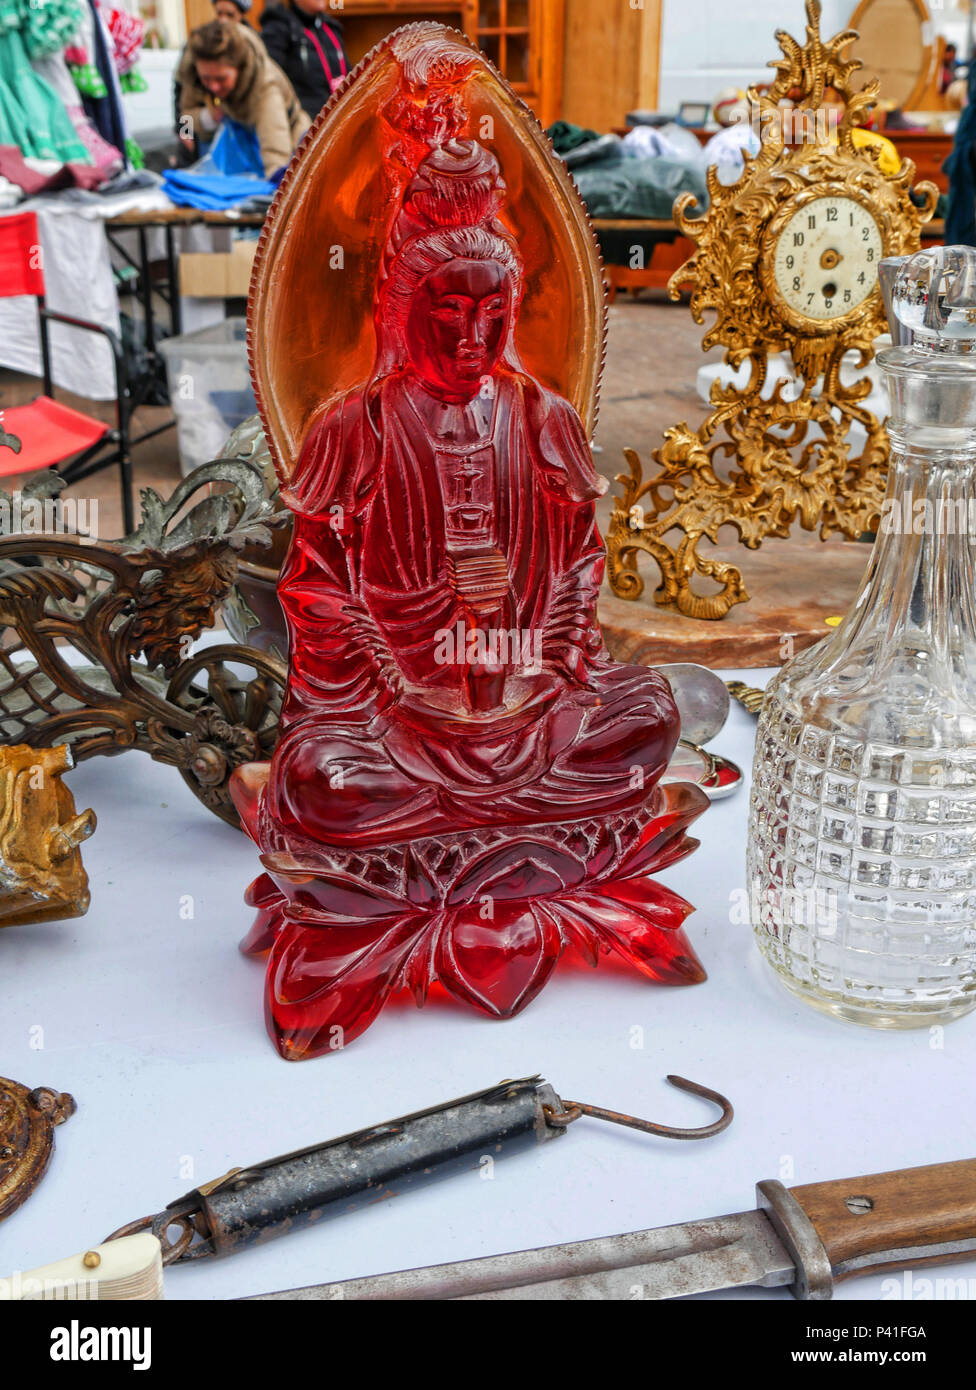 Items for sale on the Sunday Flea Market in Fuengirola on